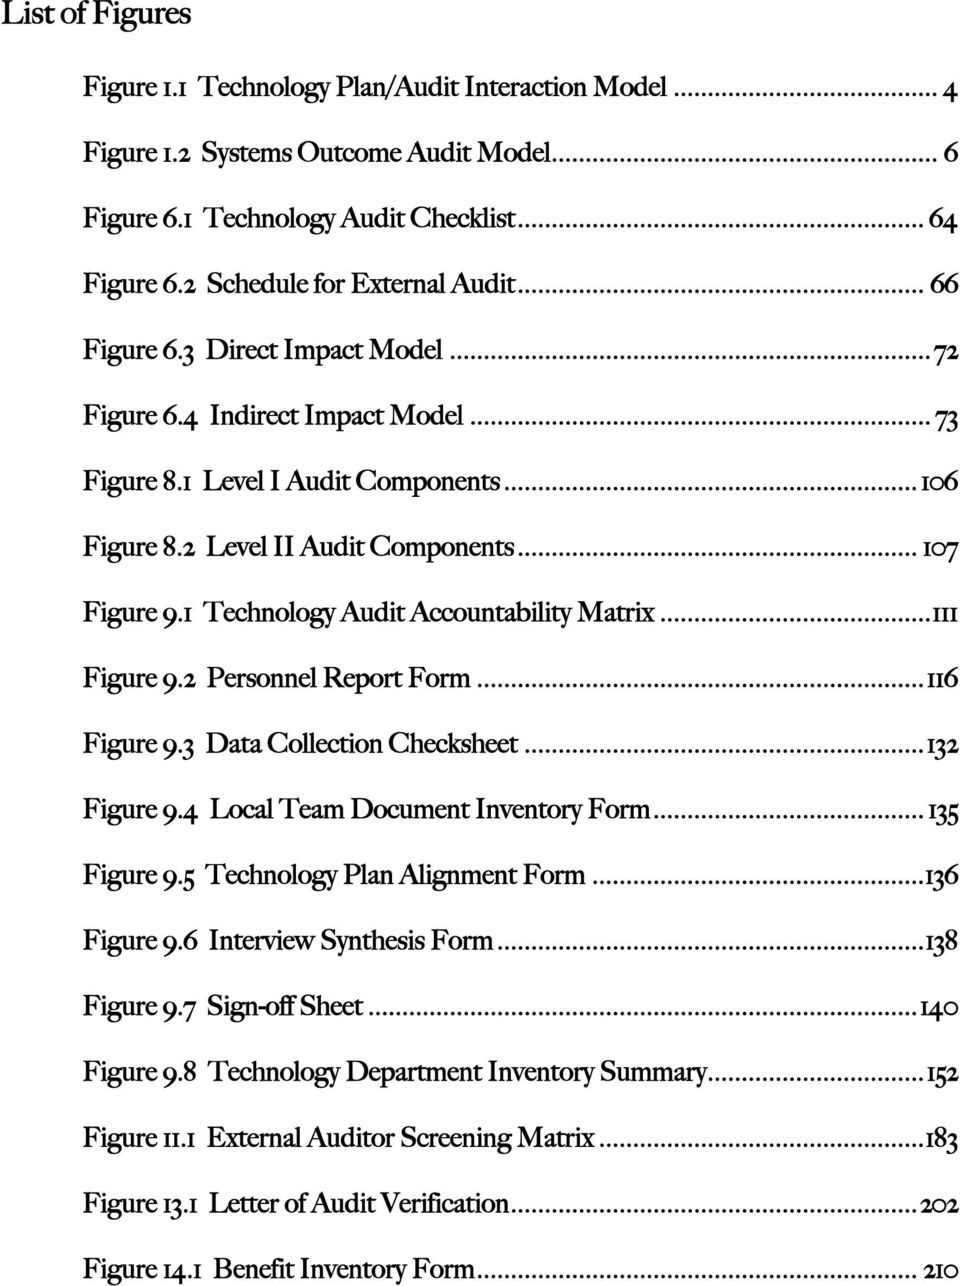 1 Technology Audit Accountability Matrix...111 Figure 9.2 Personnel Report Form...116 Figure 9.3 Data Collection Checksheet...132 Figure 9.4 Local Team Document Inventory Form... 135 Figure 9.